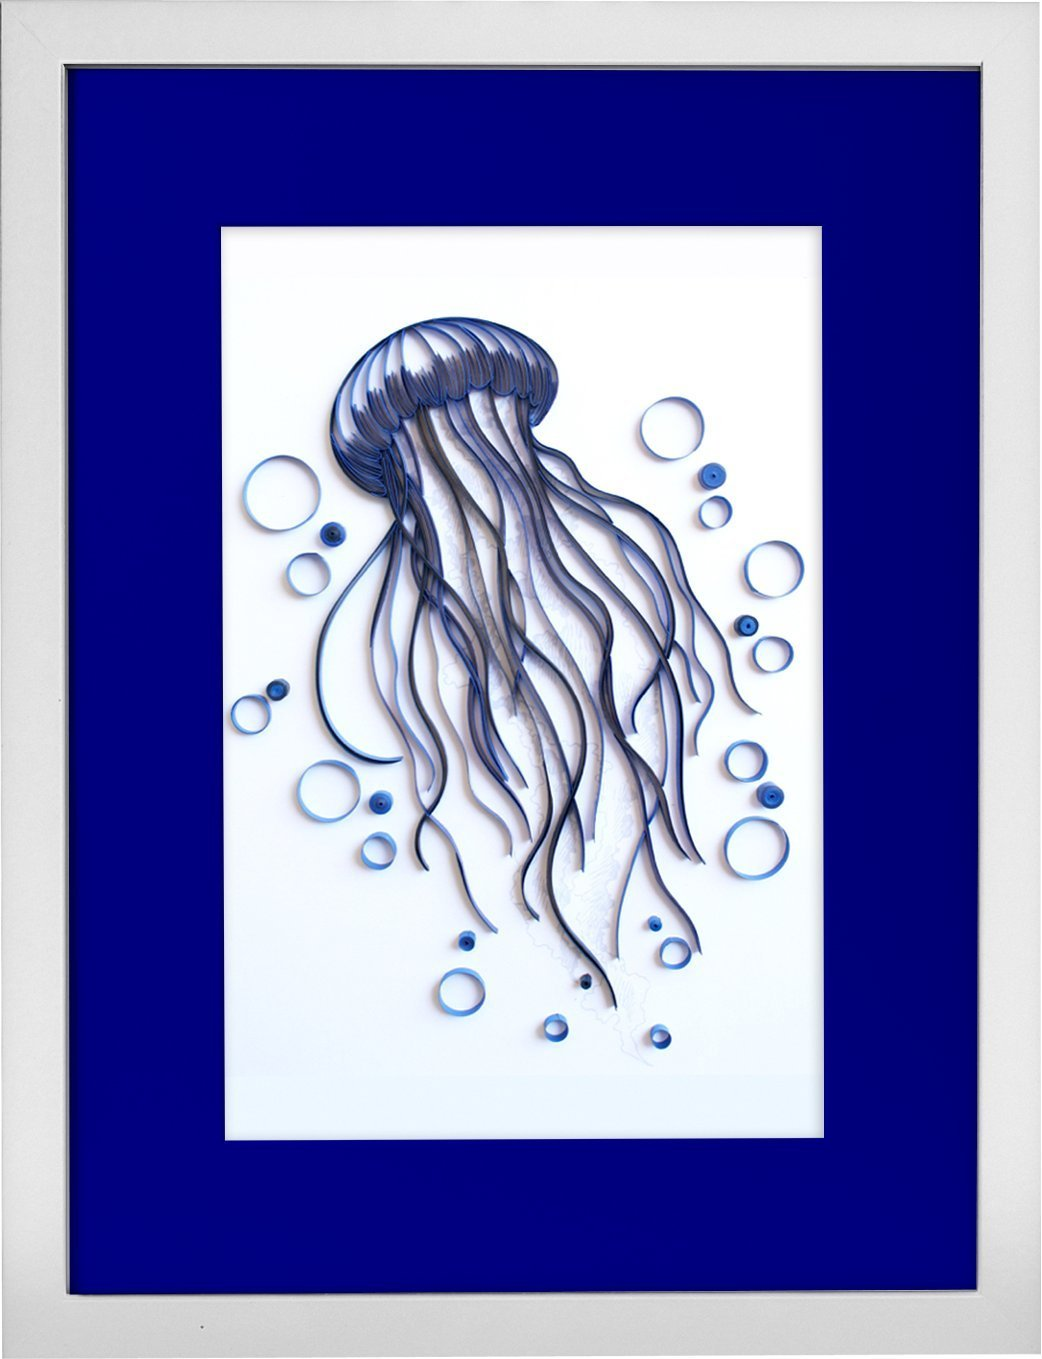 Jellyfish - Modern Paper Quilled Wall Art for Home Decor (one of a kind paper quilling handcrafted piece made with love by an artist in California)